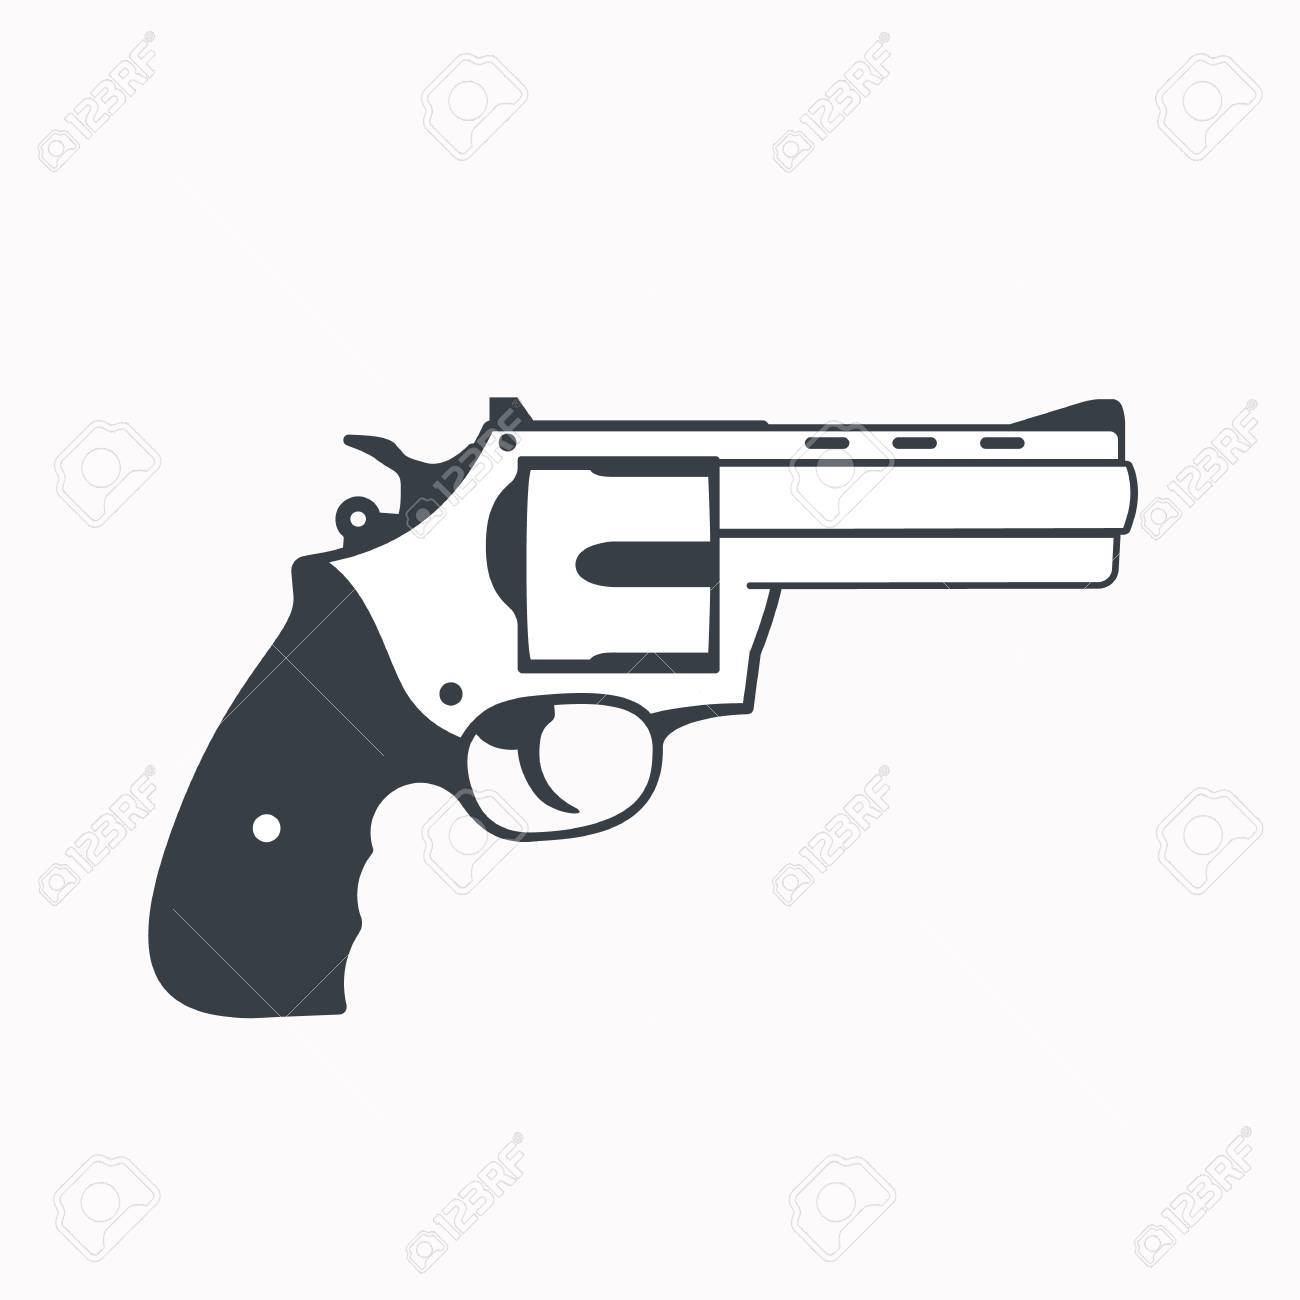 revolver outline handgun isolated on white royalty free cliparts